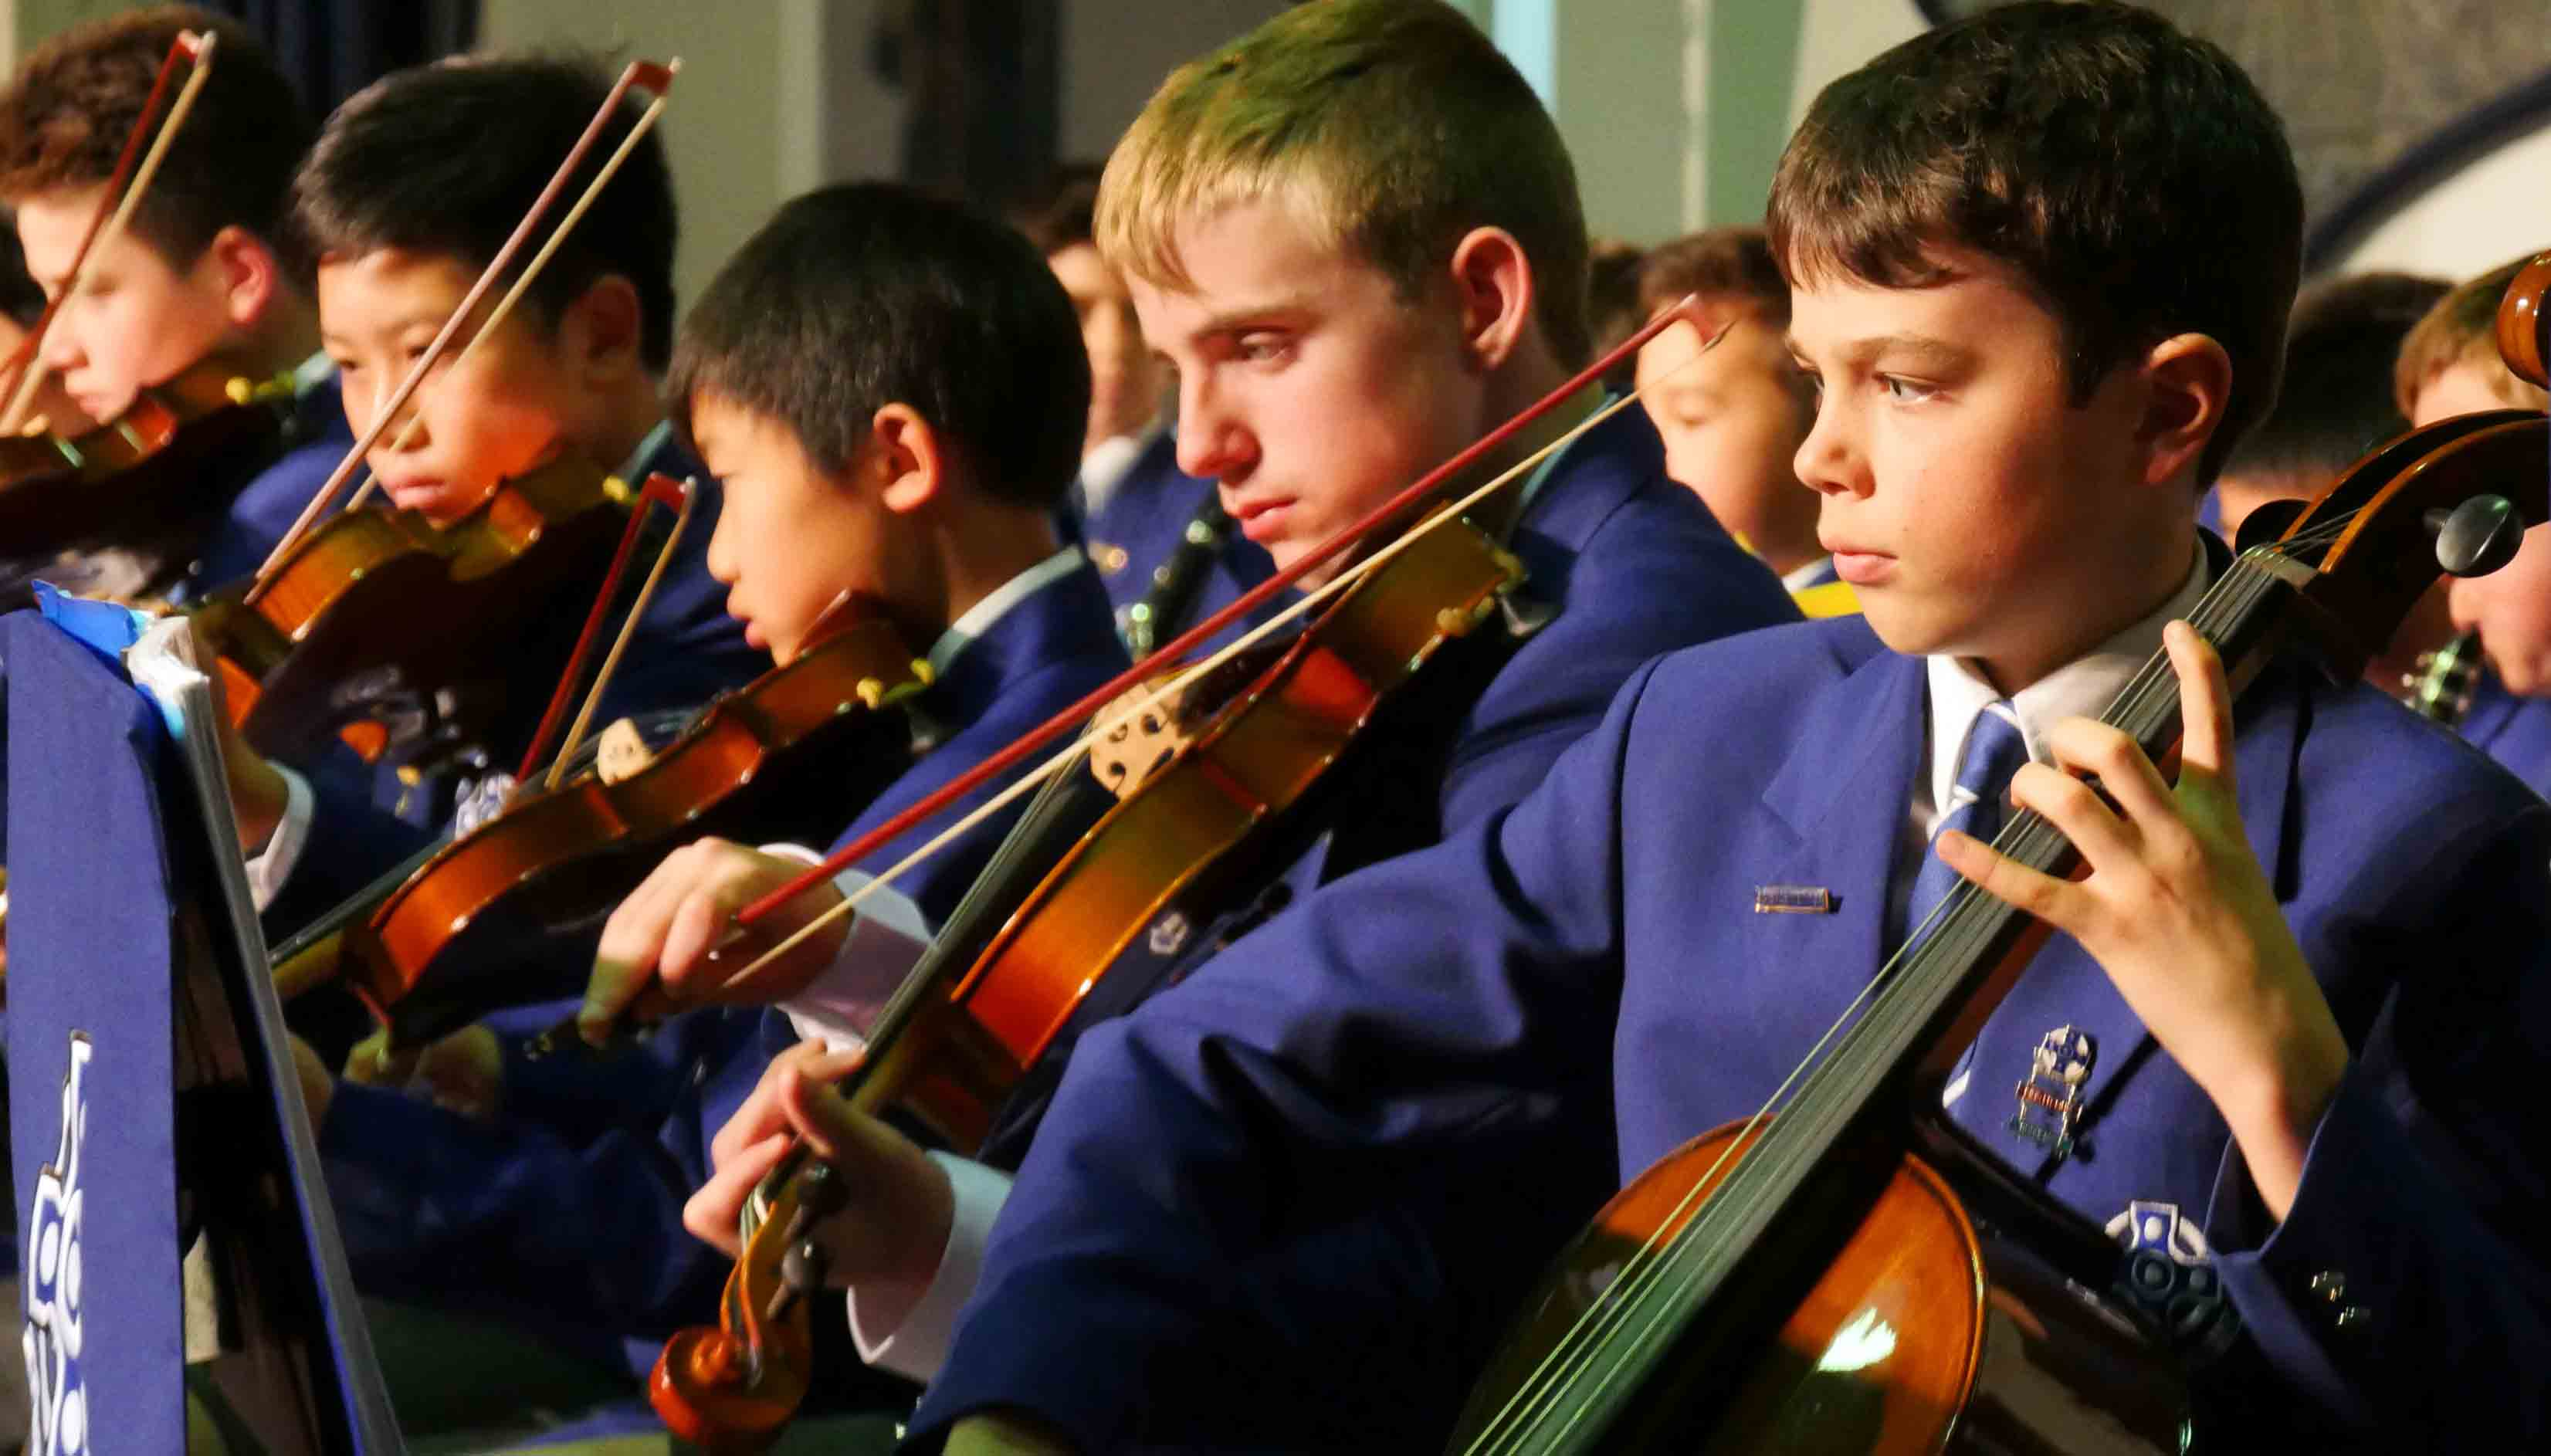 Saint-Kentigern-Boys'-School-Music-Orchestra.jpg